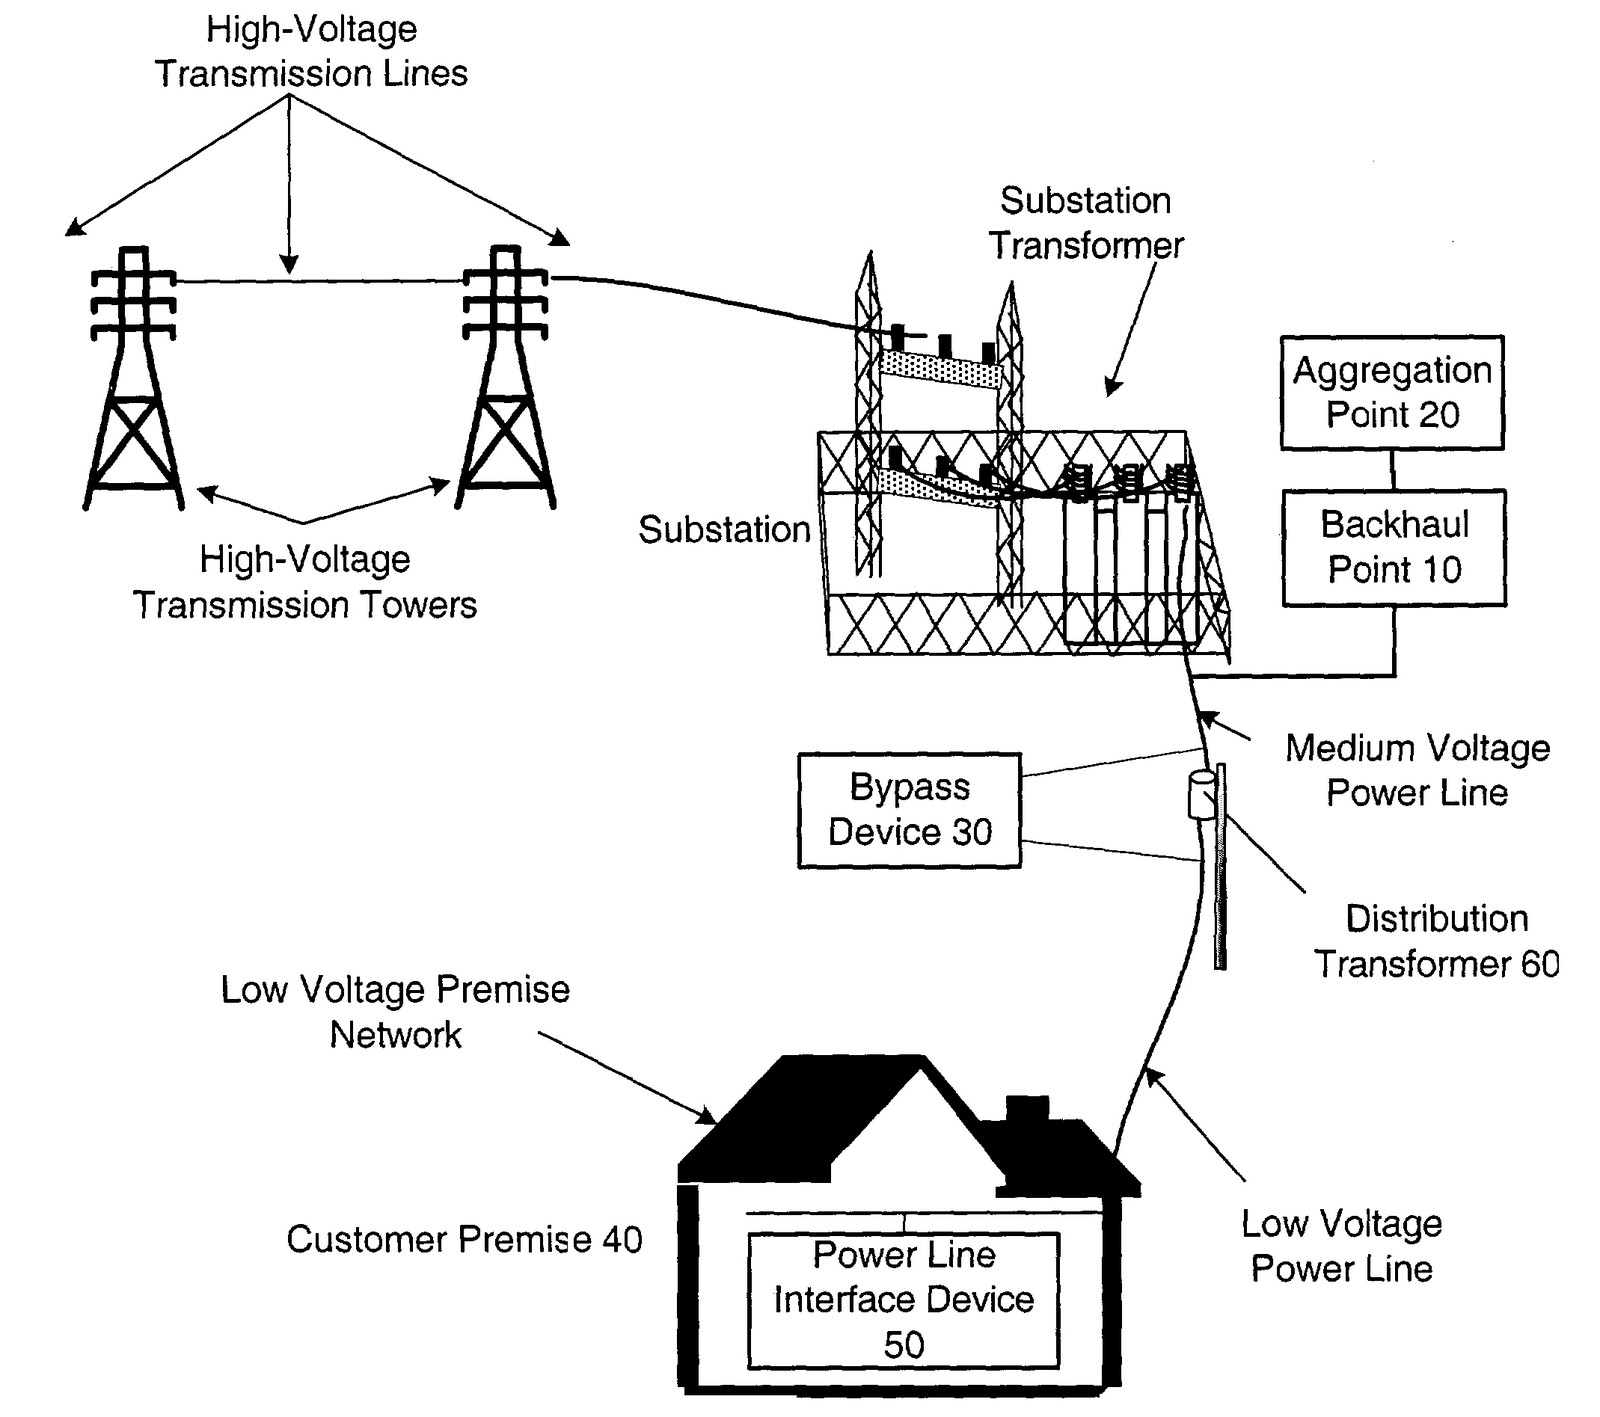 Basic Transmission And Distribution Design Distribution Lines